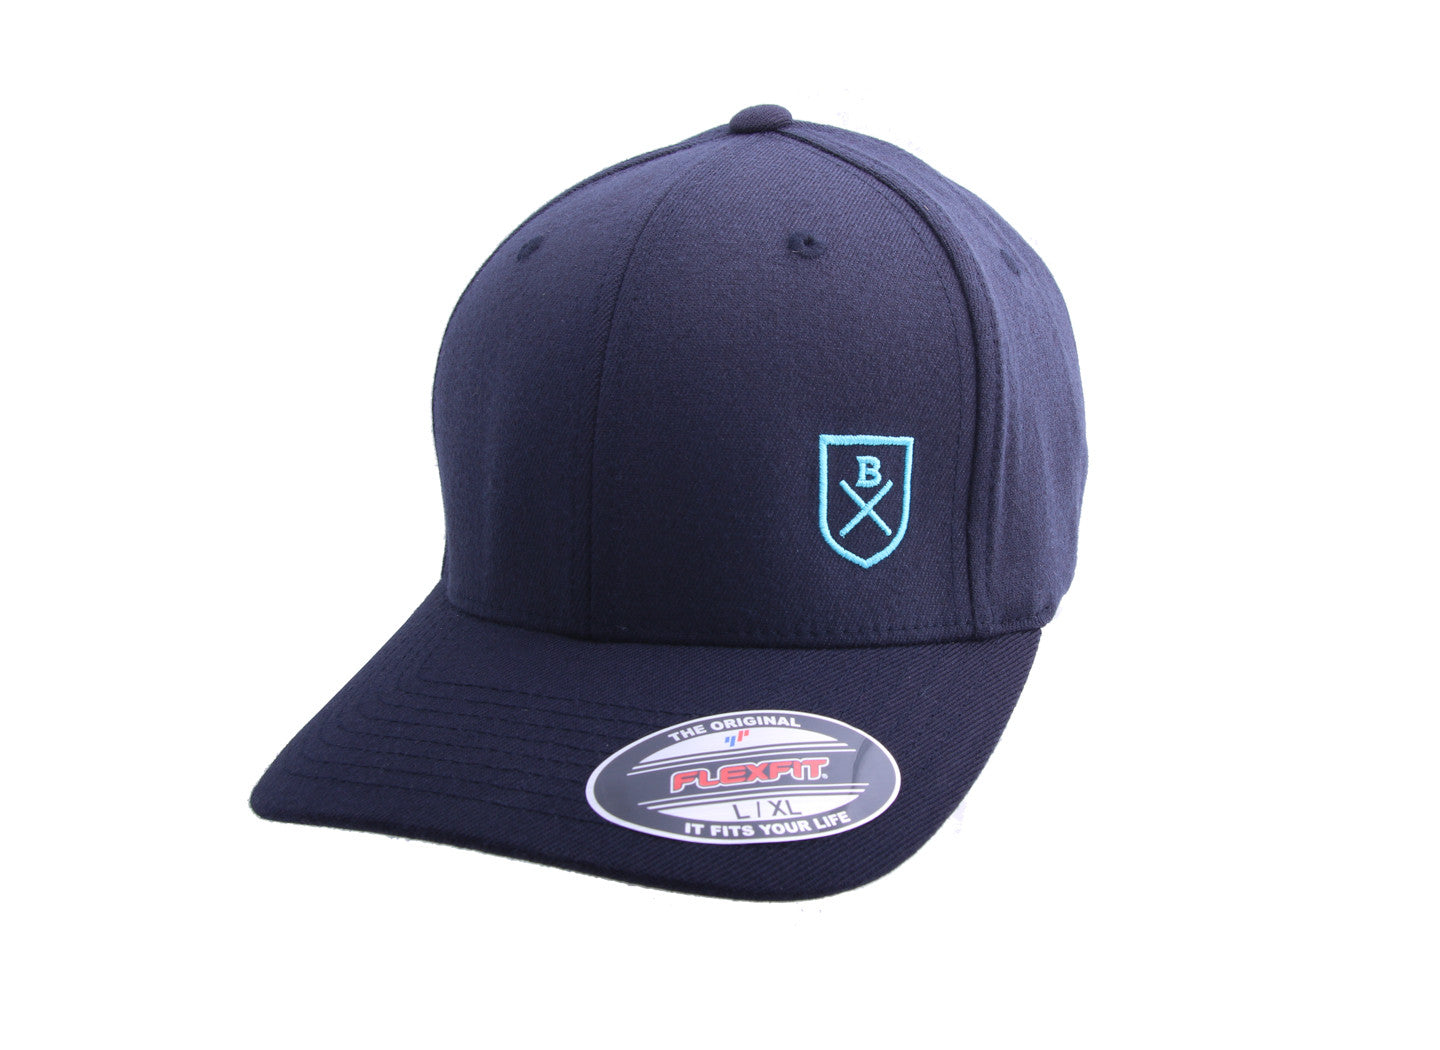 Embroidered Shield Classic Cap in Navy - The World's Finest Waterwear | BLUESMITHS